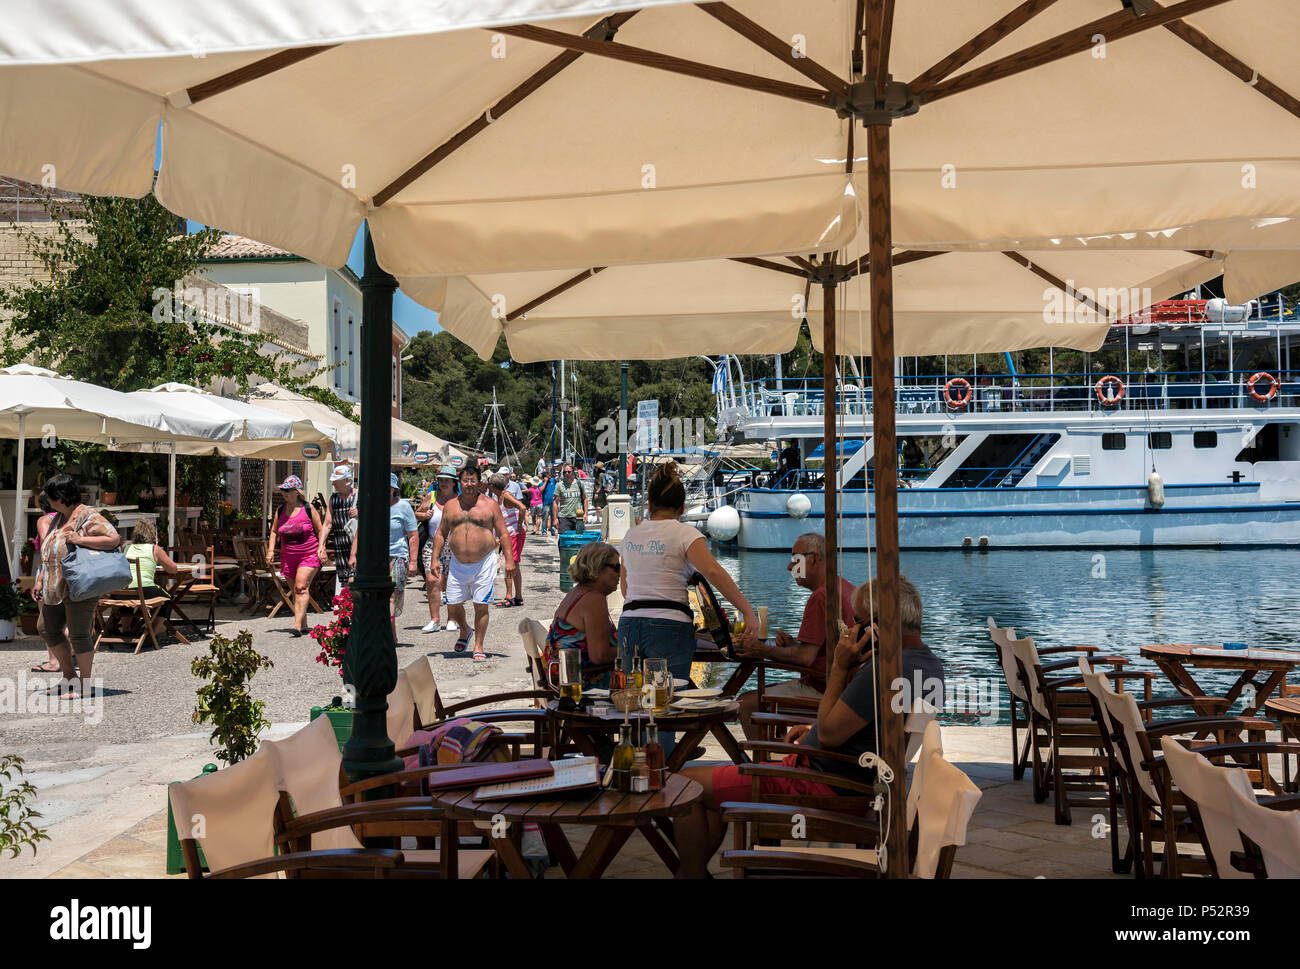 Tourists in Gaios, Paxos. - Stock Image